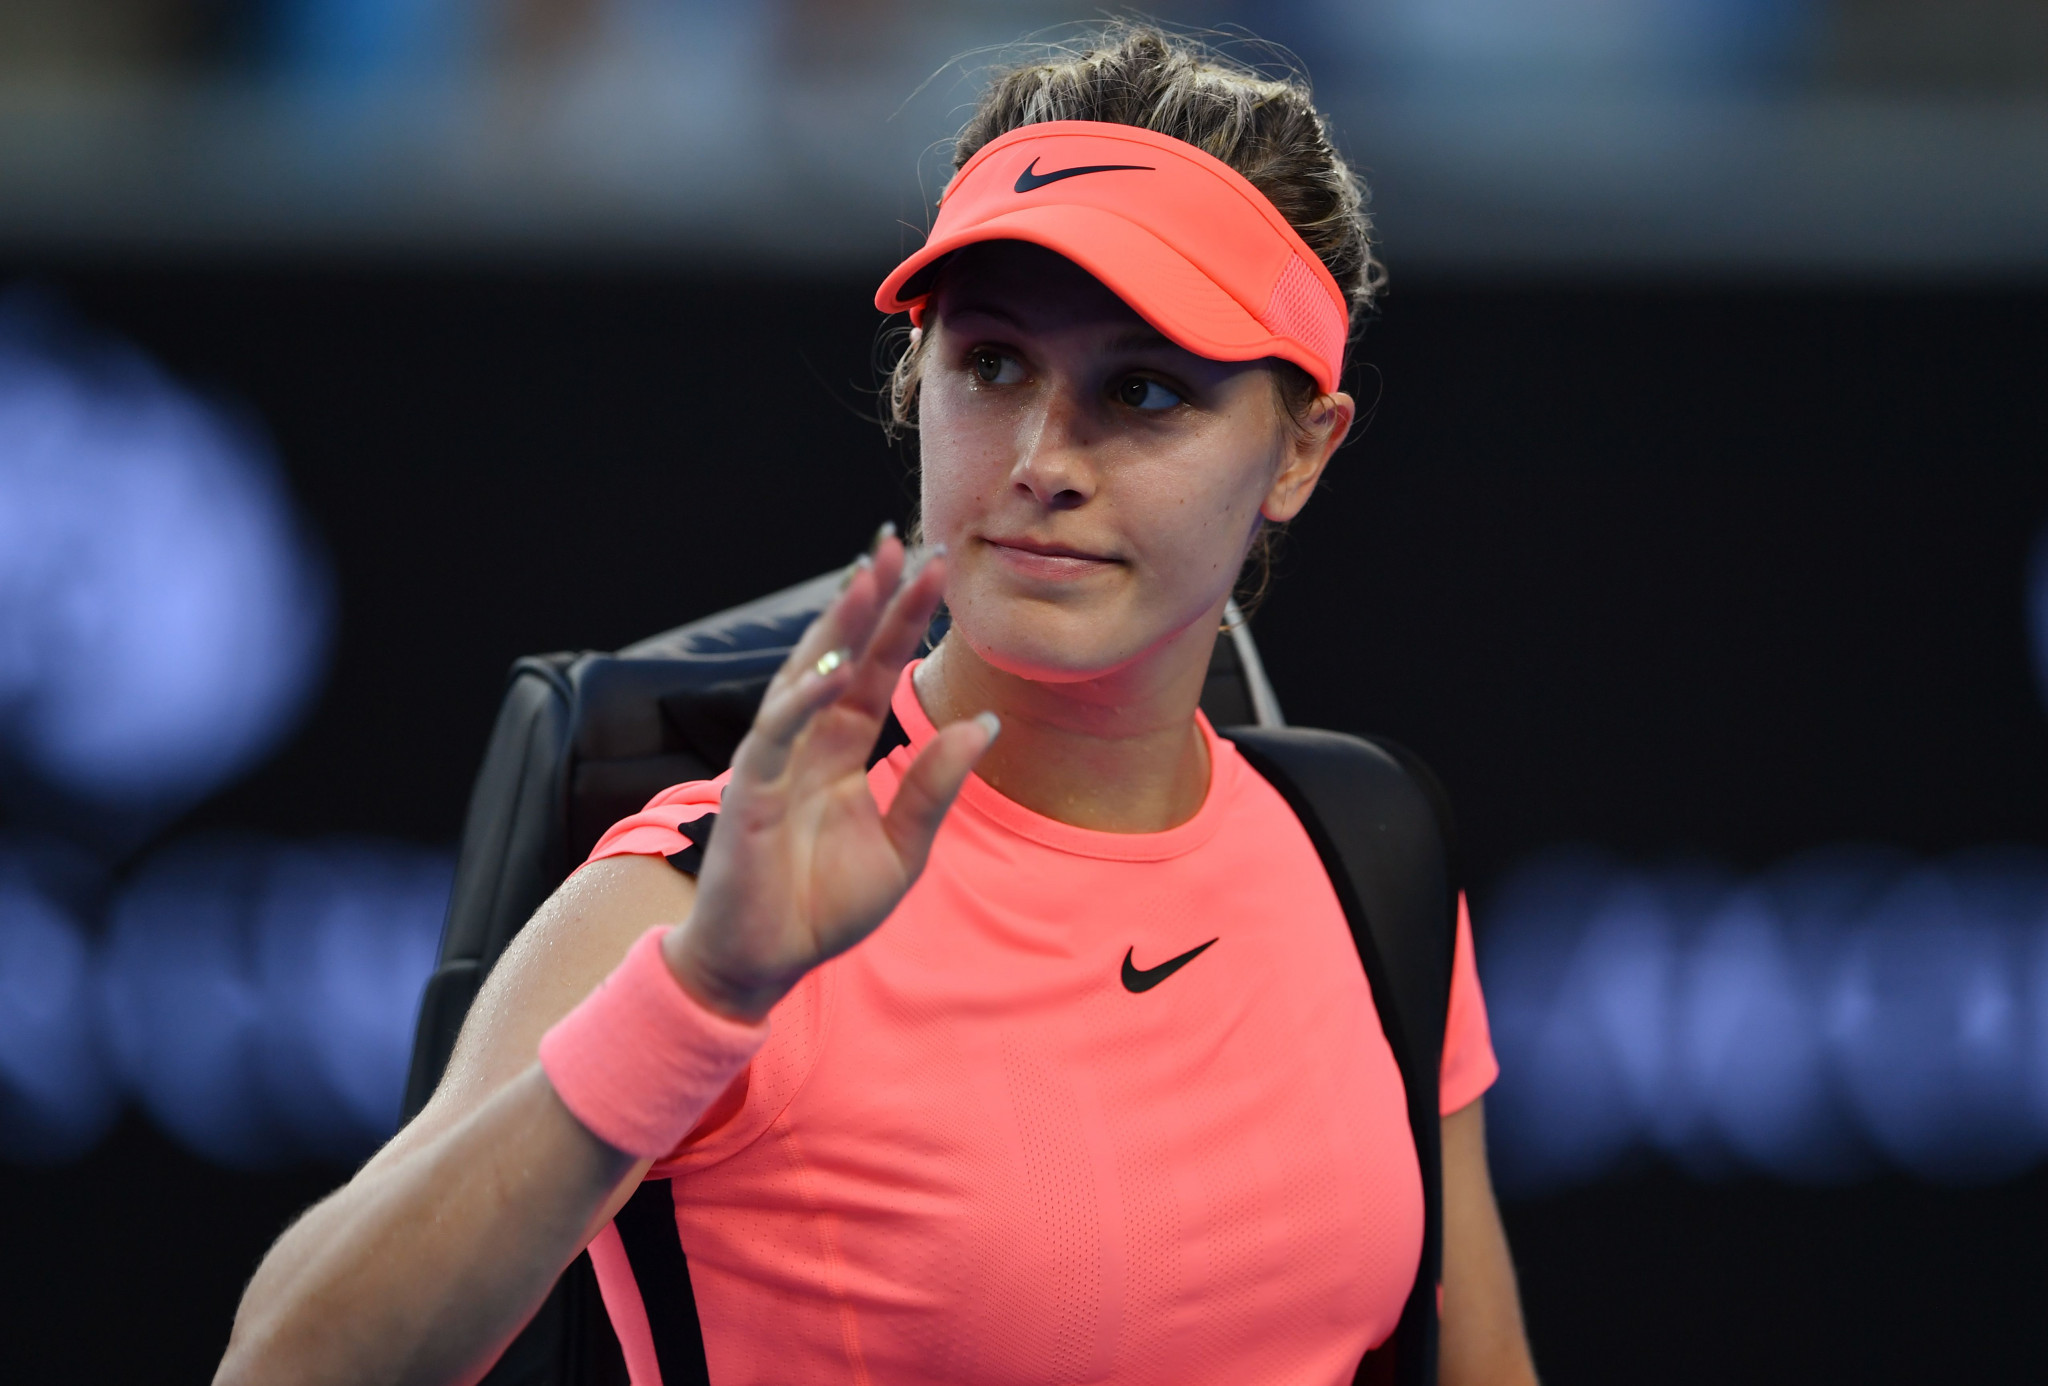 Bouchard in line for huge compensation pay out after USTA ruled most at fault for changing room fall